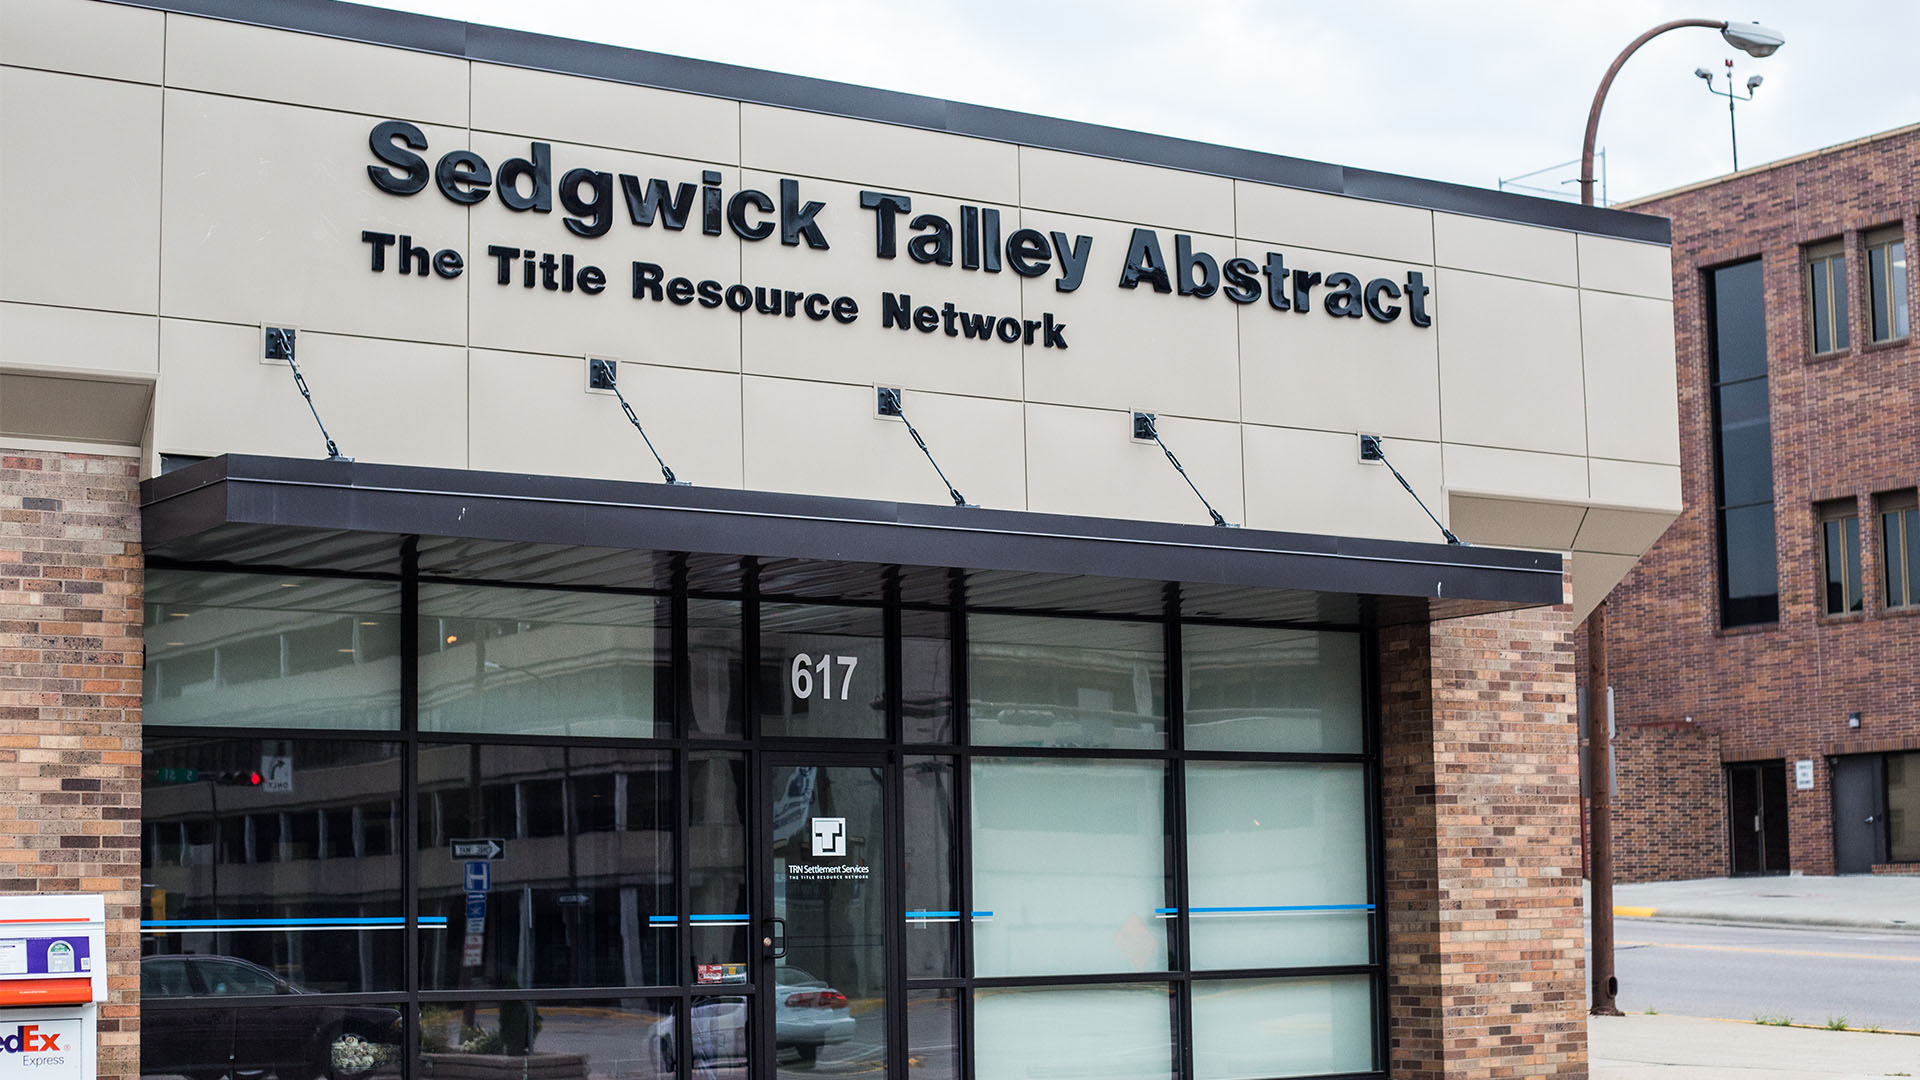 Sedgwick Talley Abstract